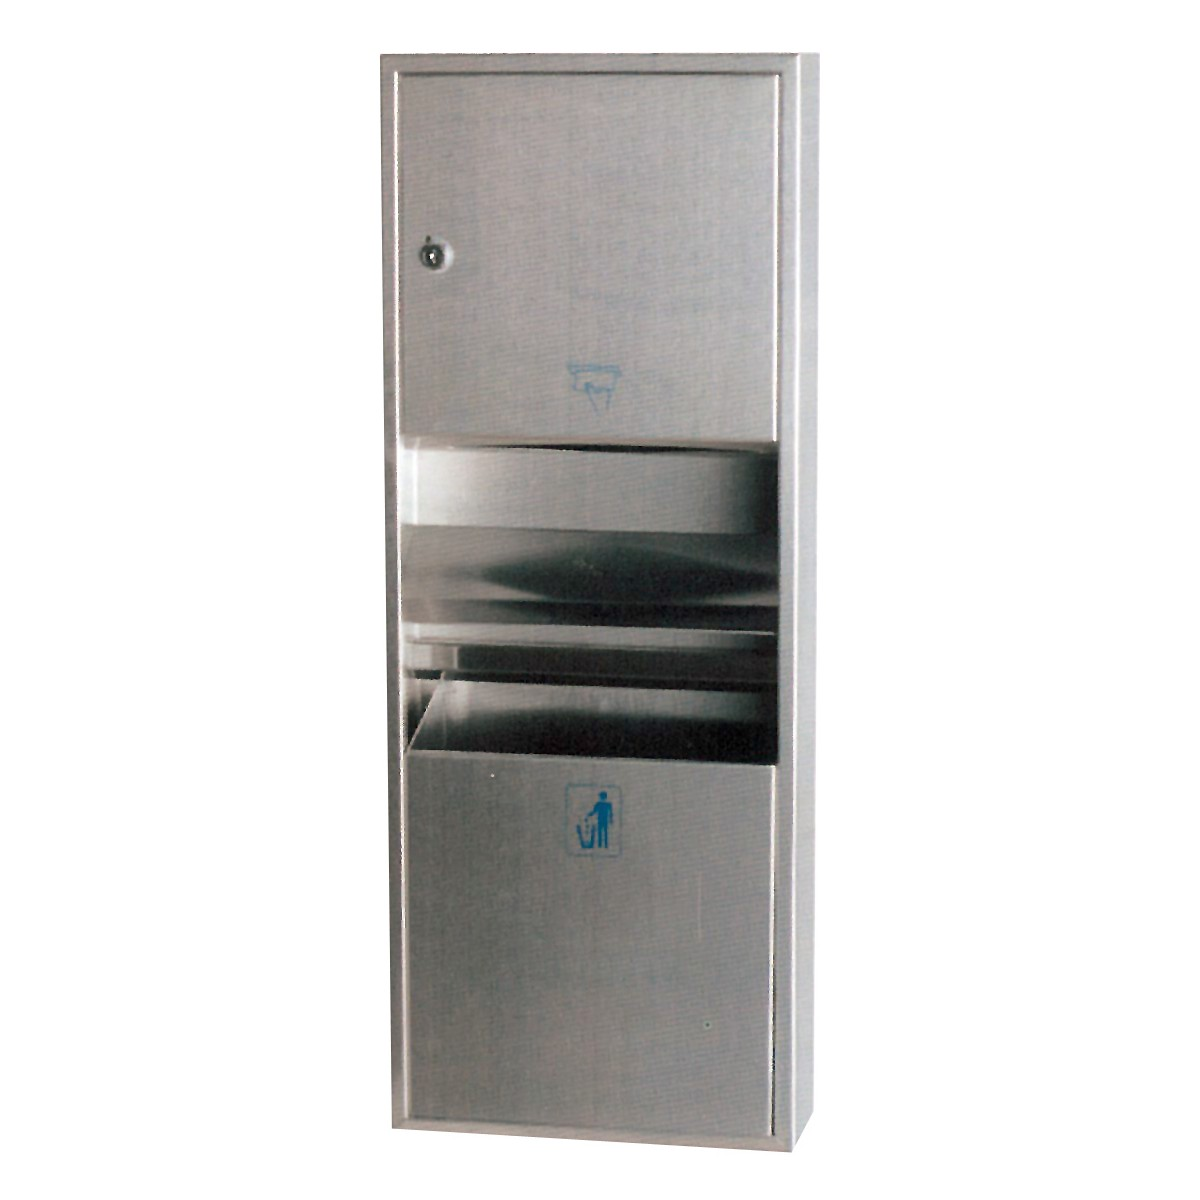 hand towel dispenser with trash can multifold stainless steel